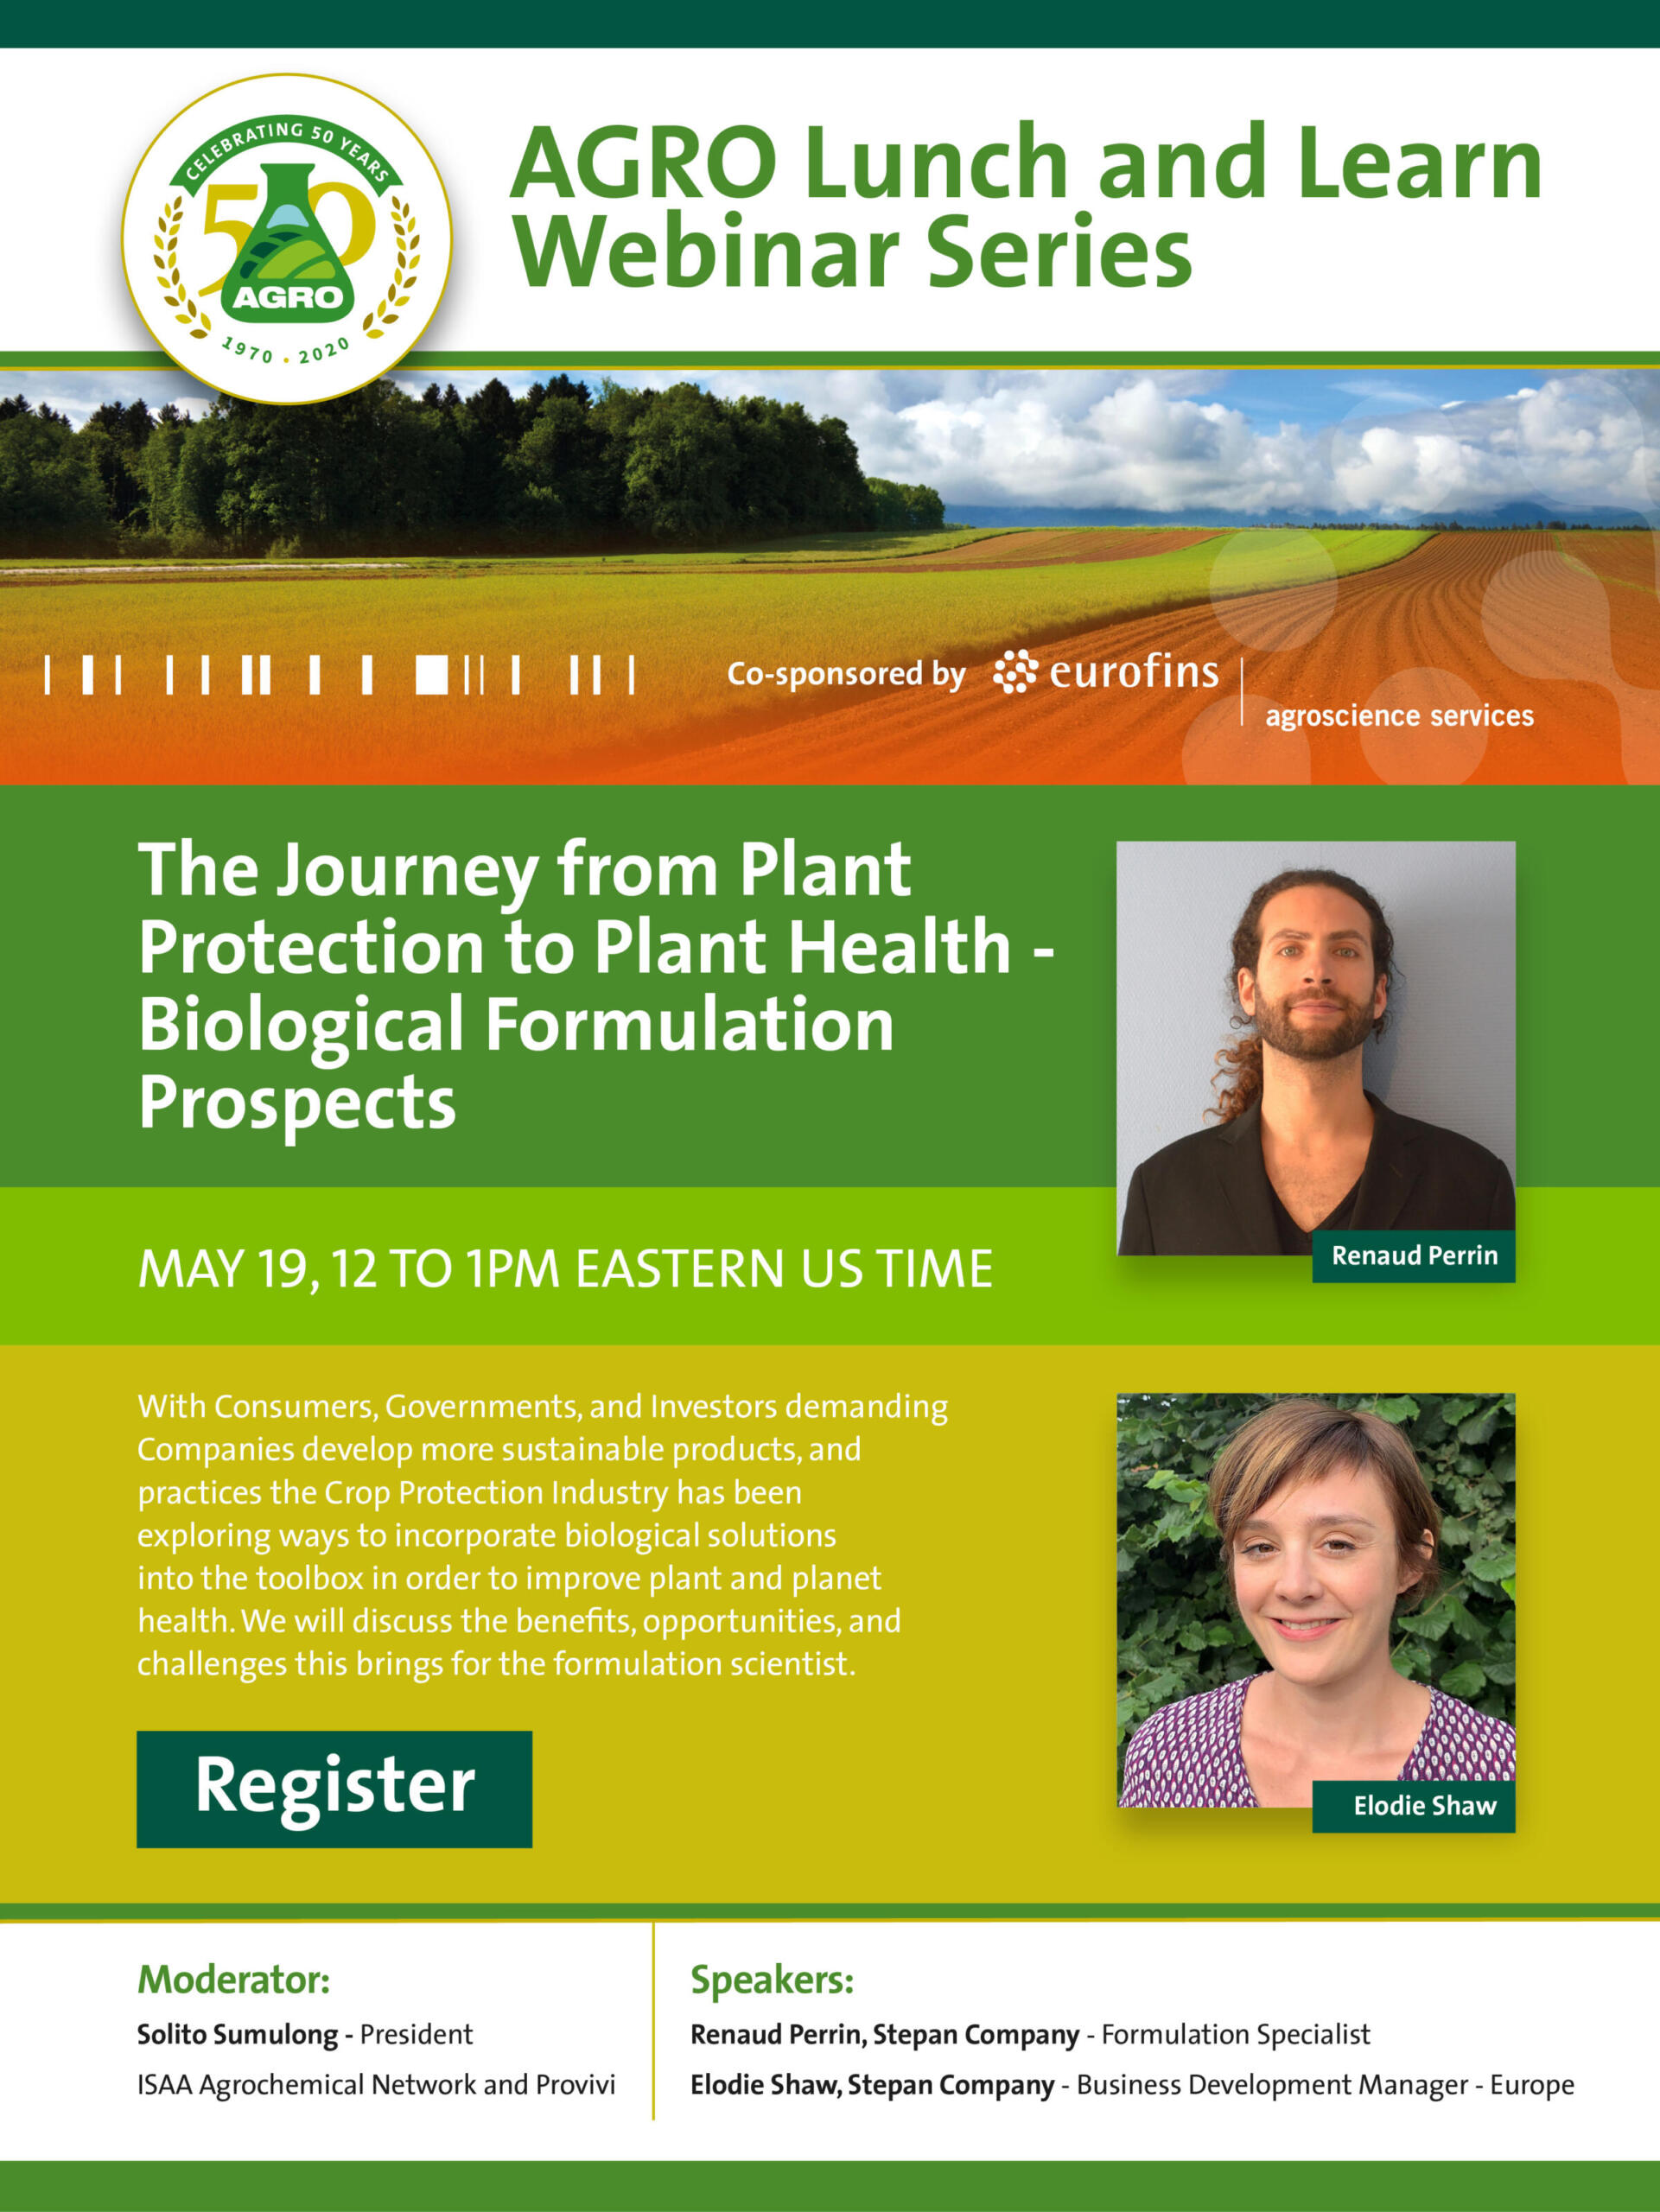 The Journey From Plant Protection To Plant Health – Biological Formulation Prospects